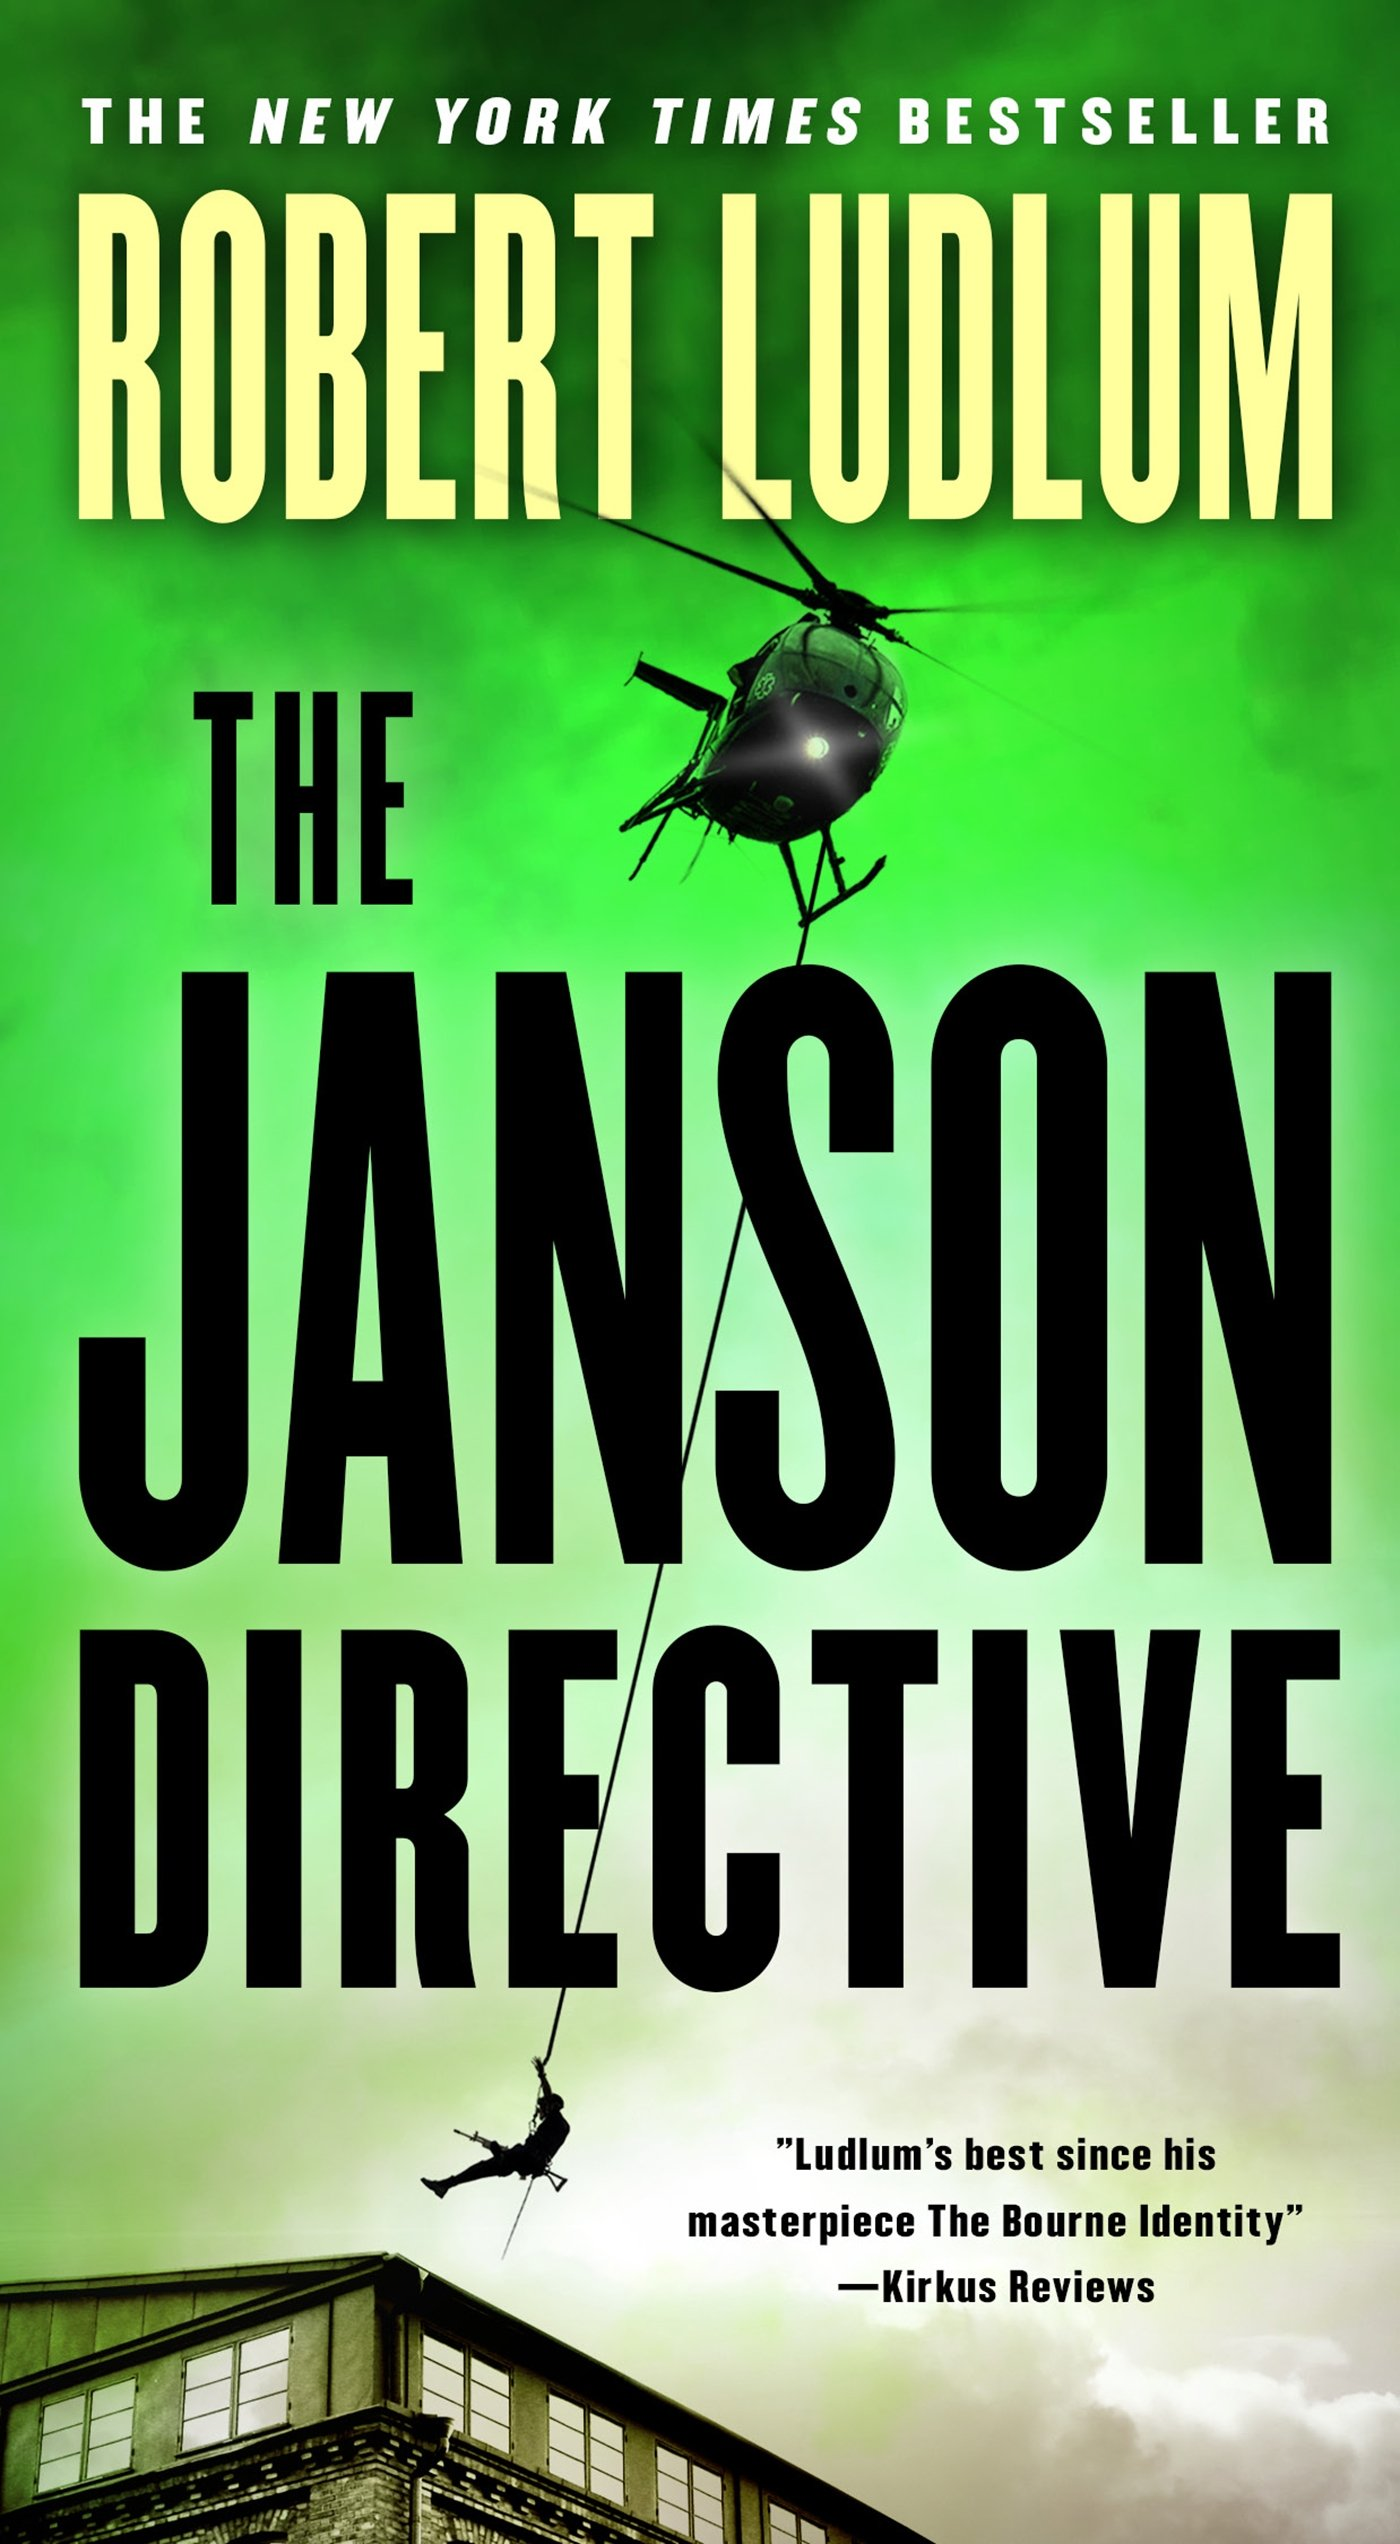 Download Filme The Janson Directive Torrent 2021 Qualidade Hd